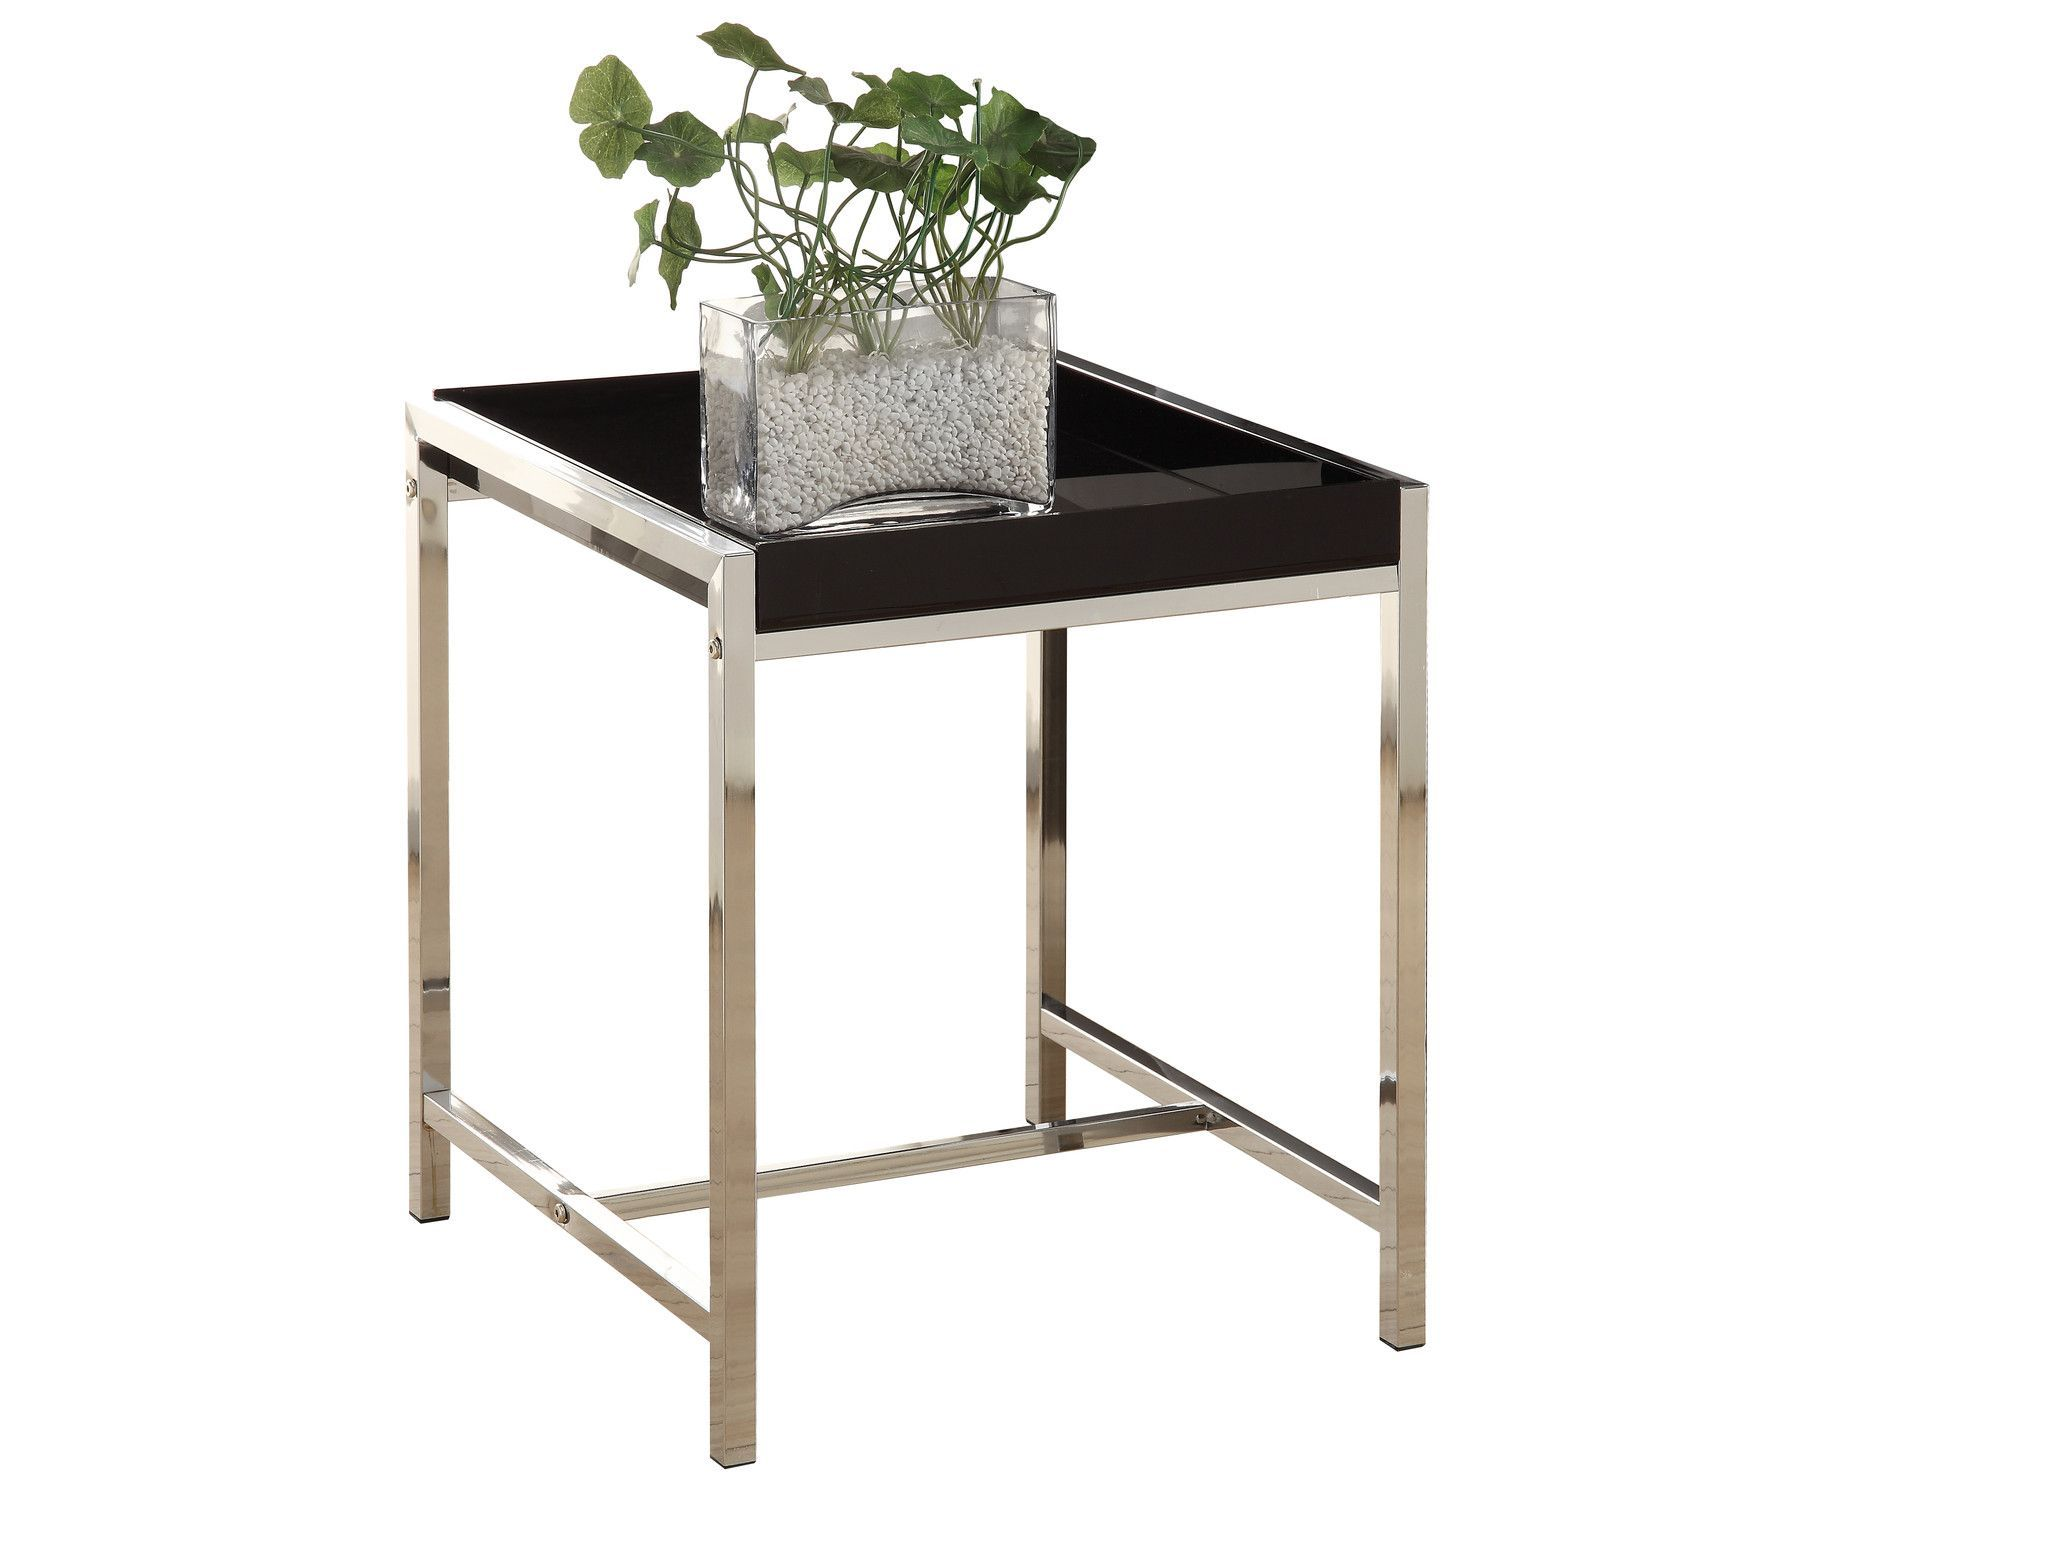 black acrylic chrome metal accent table products ikea bedroom cupboards cherry wood furniture teal cabinet bathroom fittings wine cube three legged foyer decorative tables living